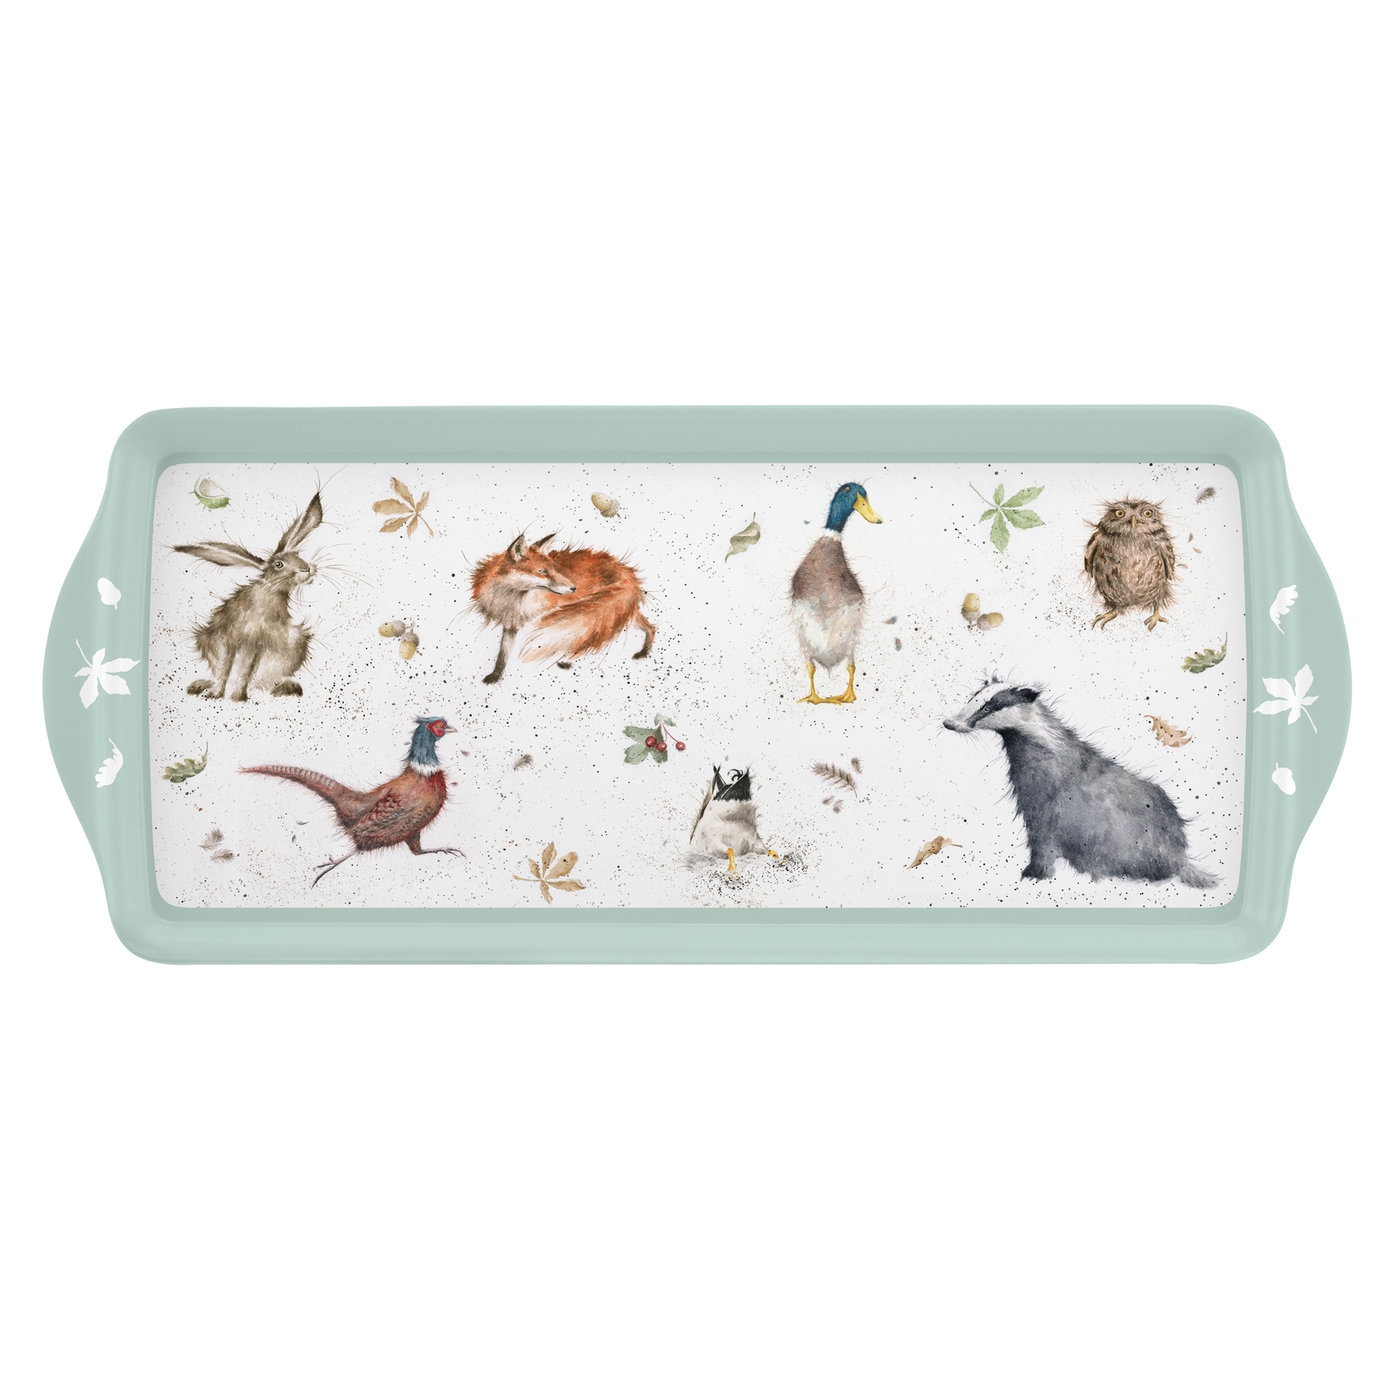 Pimpernel Wrendale Designs Melamine Sandwich Tray image number 0